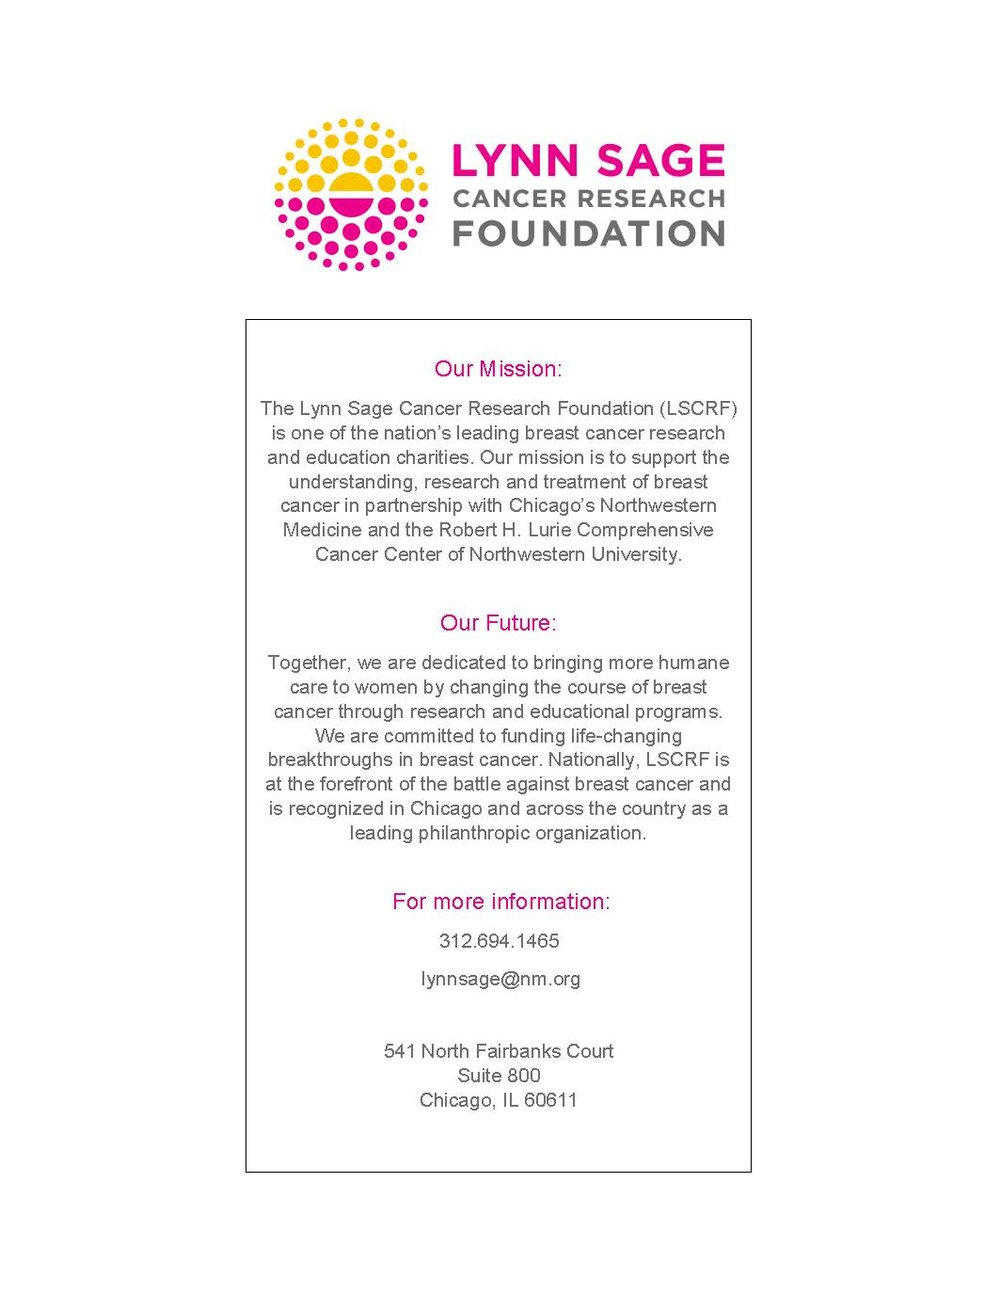 LSCRF Flyer - Light the Way Campaign.jpg